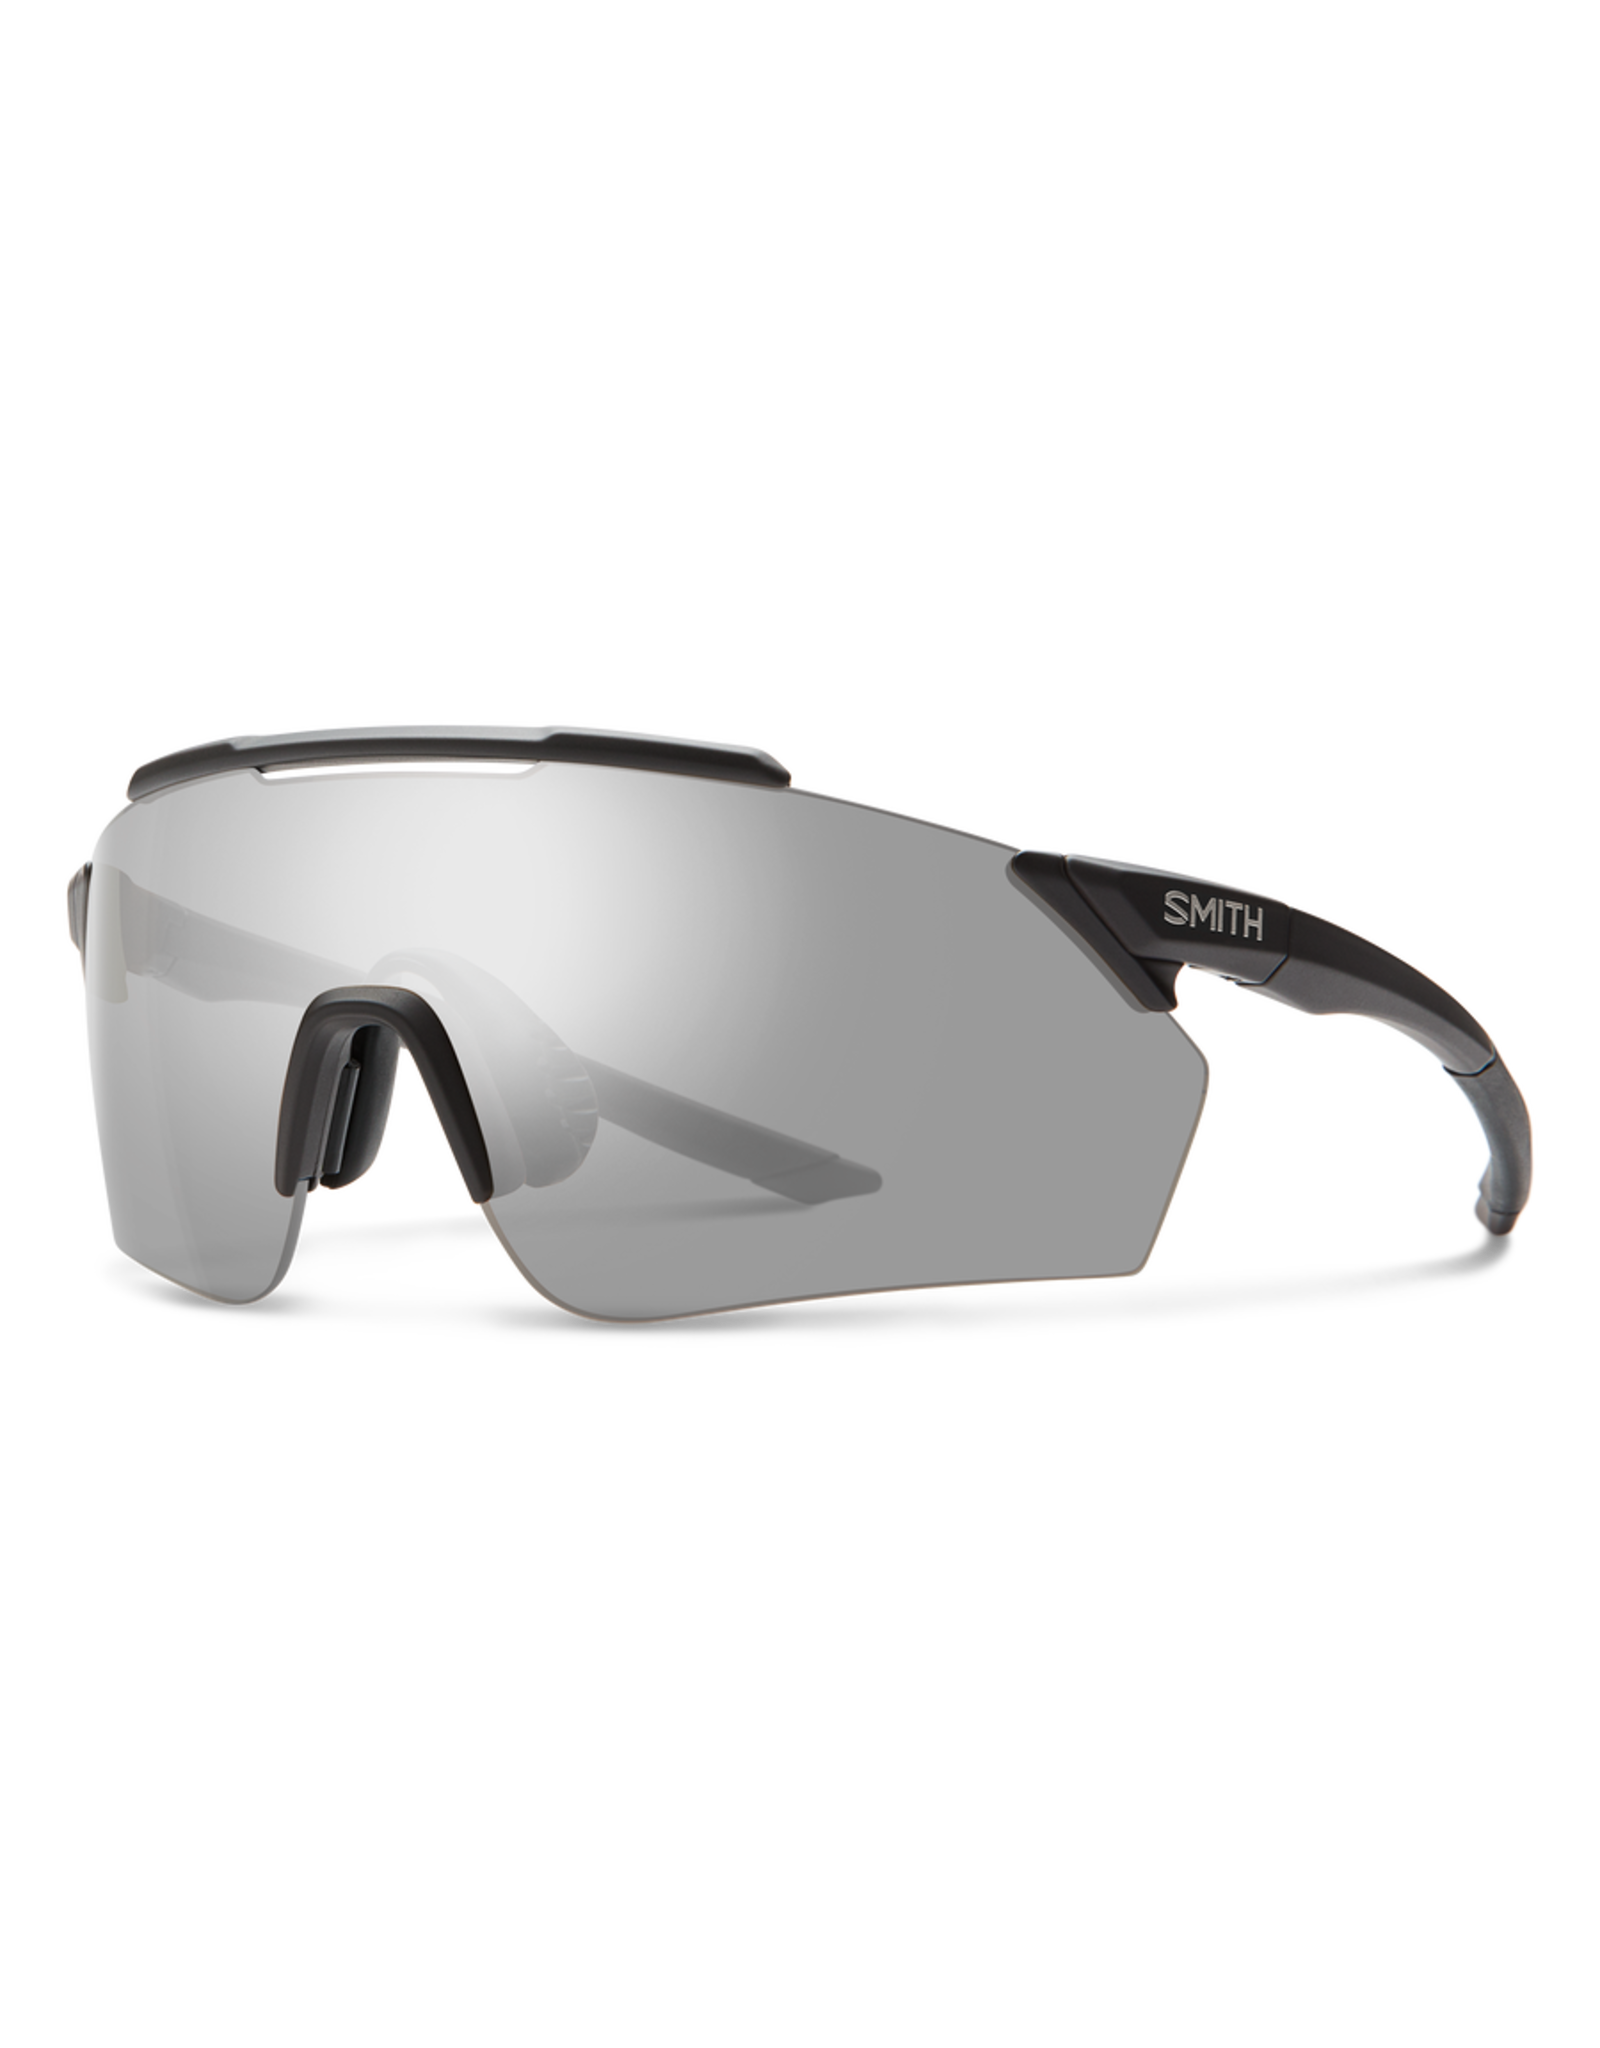 Smith SMITH, Sunglasses, Ruckus, Matte Black Frame, Chromapop Platinum Mirror Lens